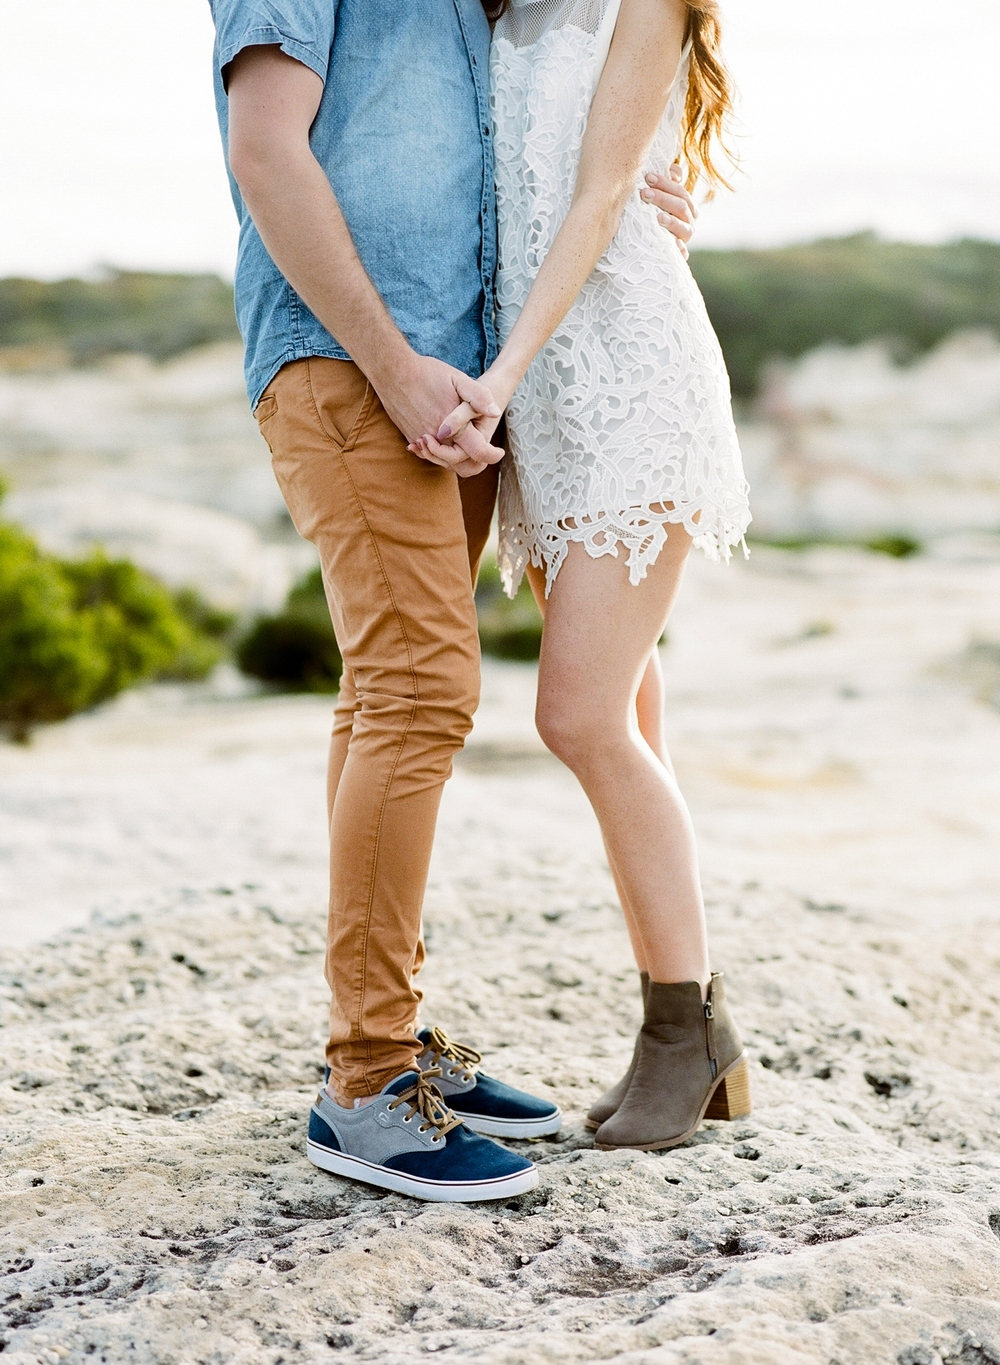 Sydney engagment shoot by Wedding photographer Glen Edwards_0710.jpg